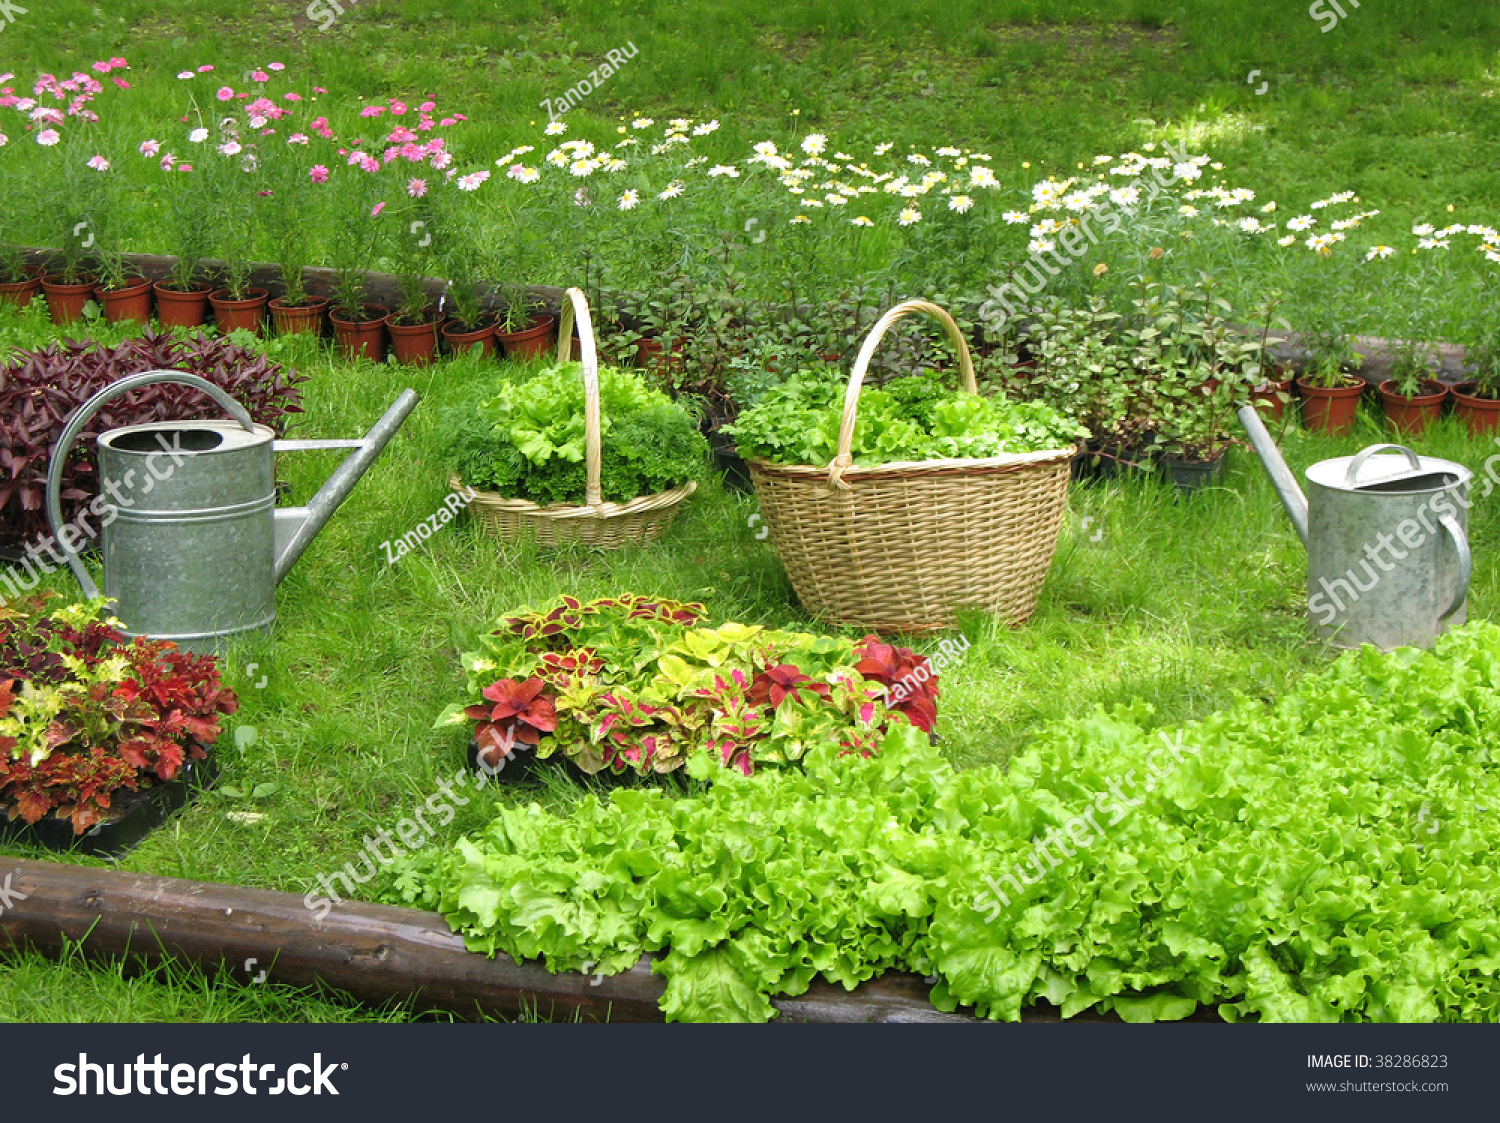 Aromatic herbs in baskets and containers stock photo 38286823 shutterstock - Aromatic herbs pots multiple benefits ...